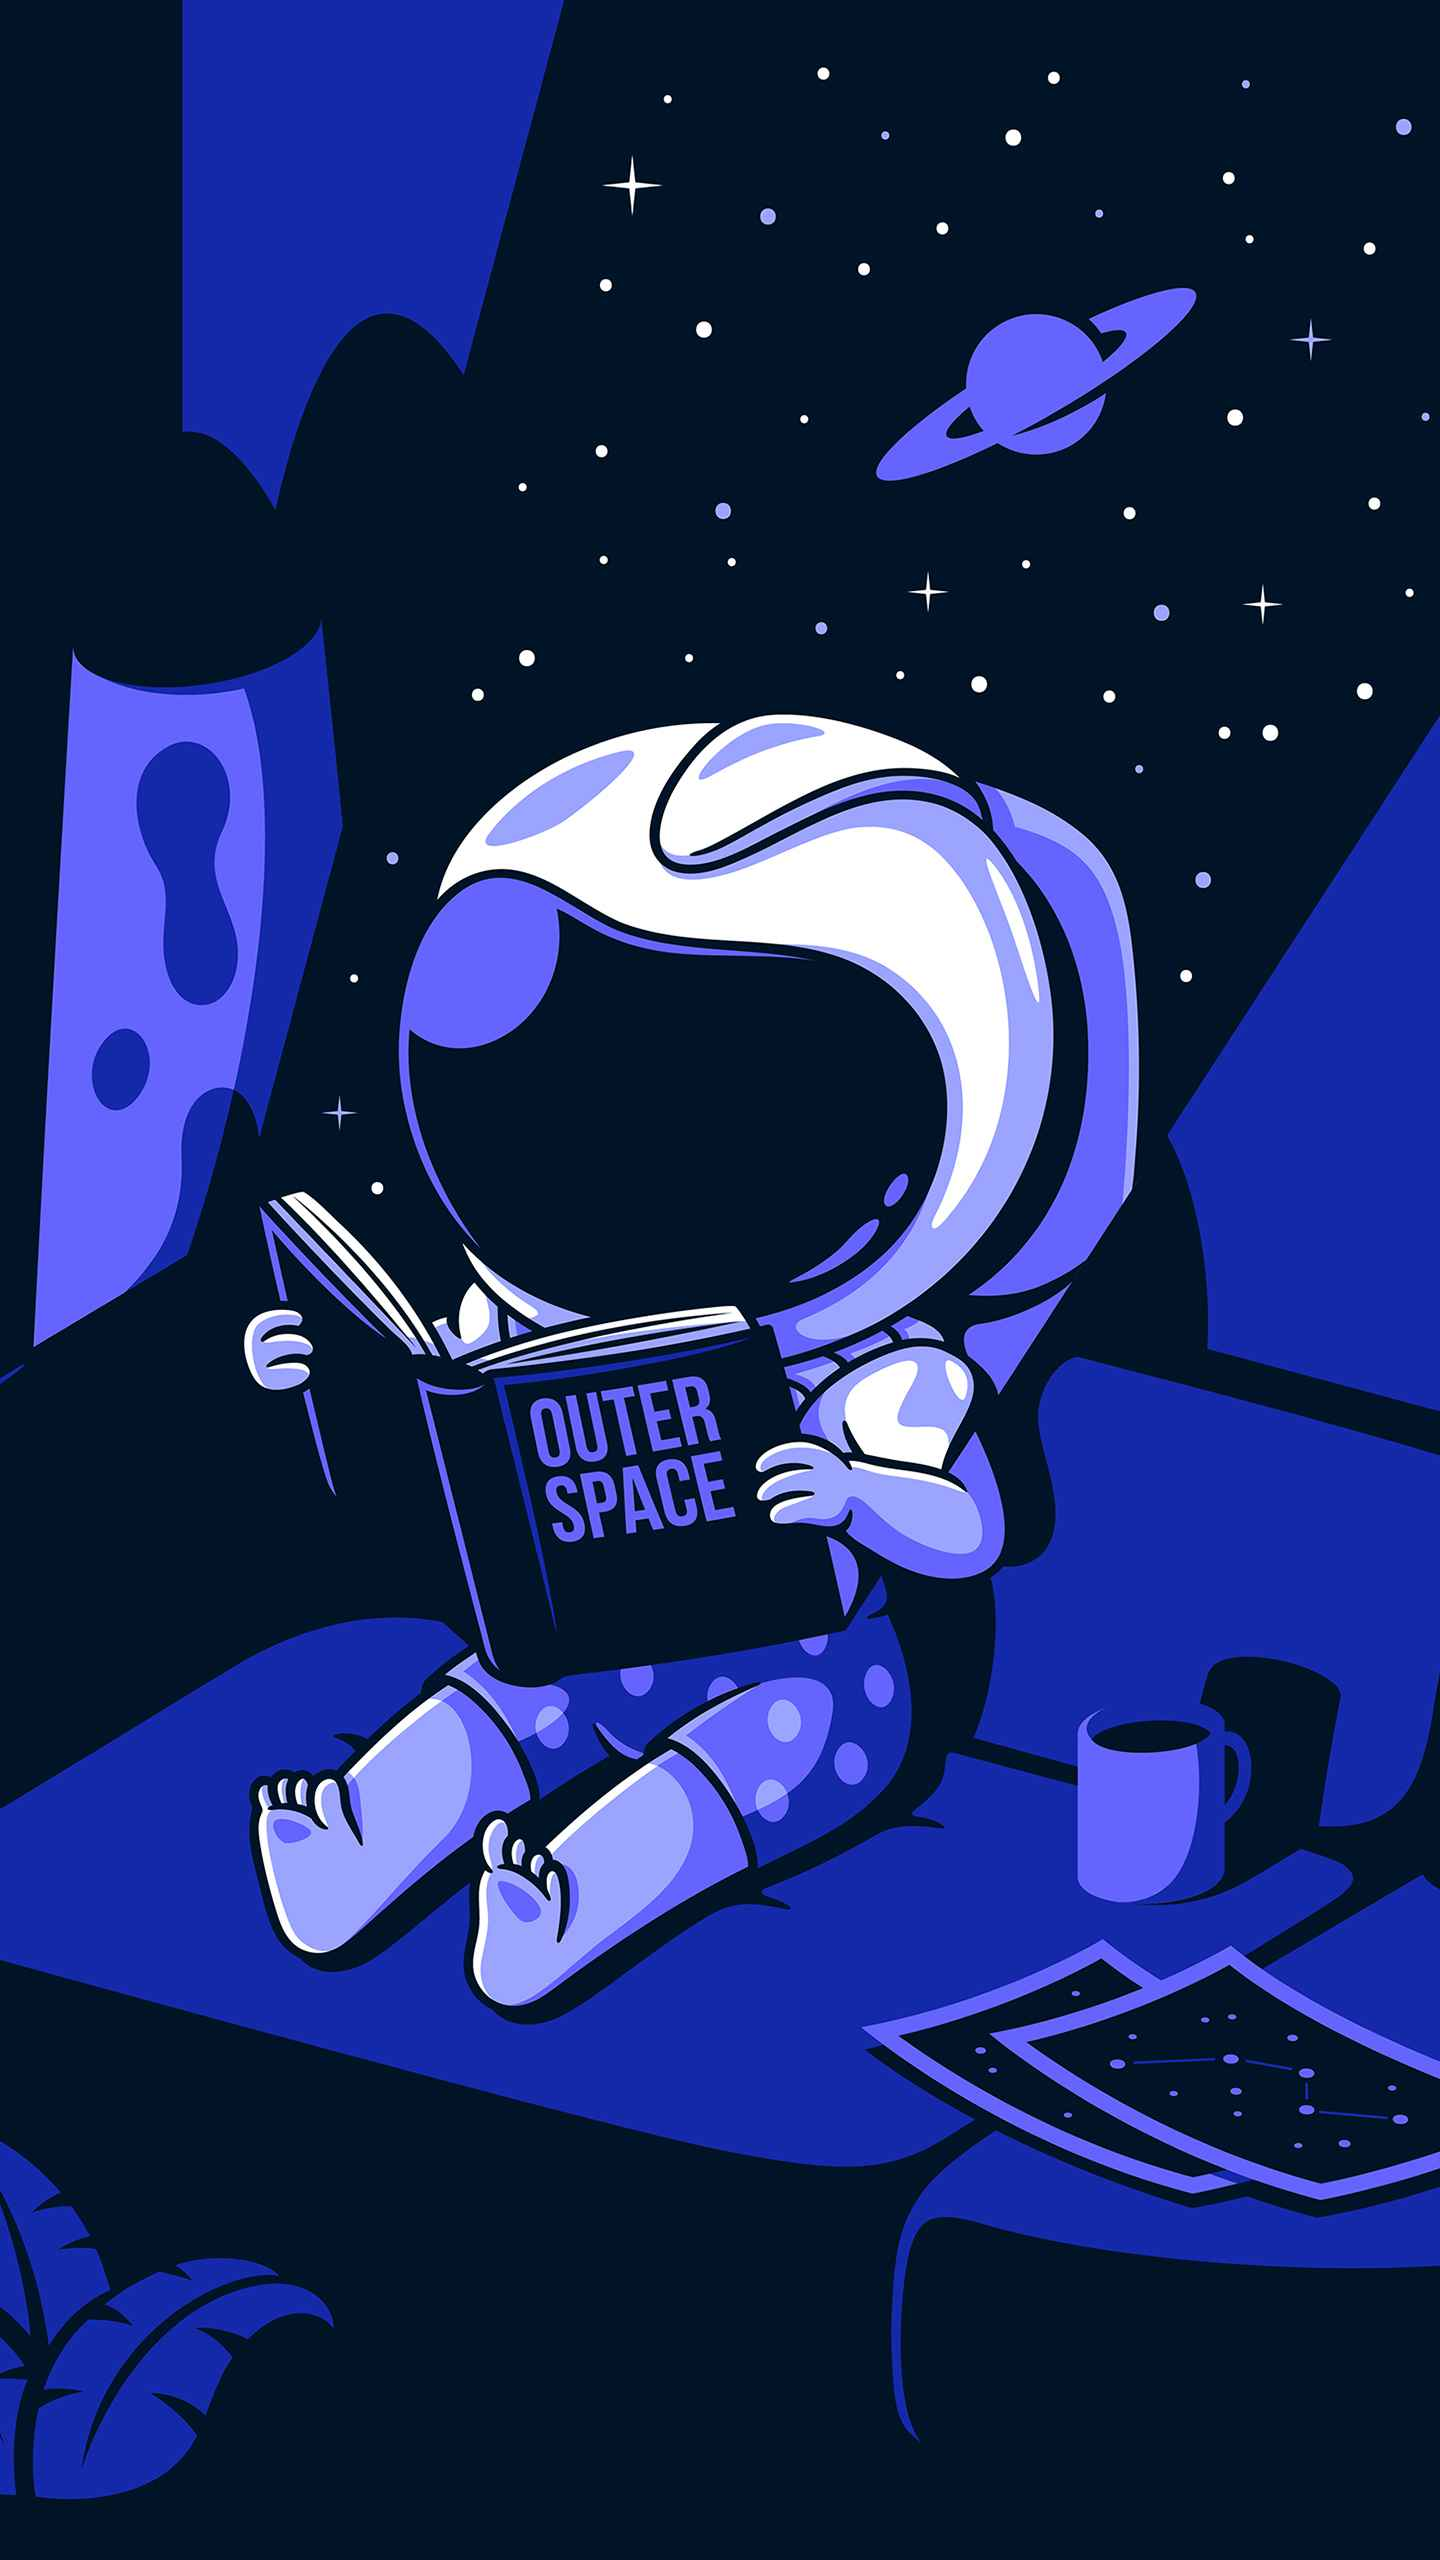 astronaut outer space appears - photo #35